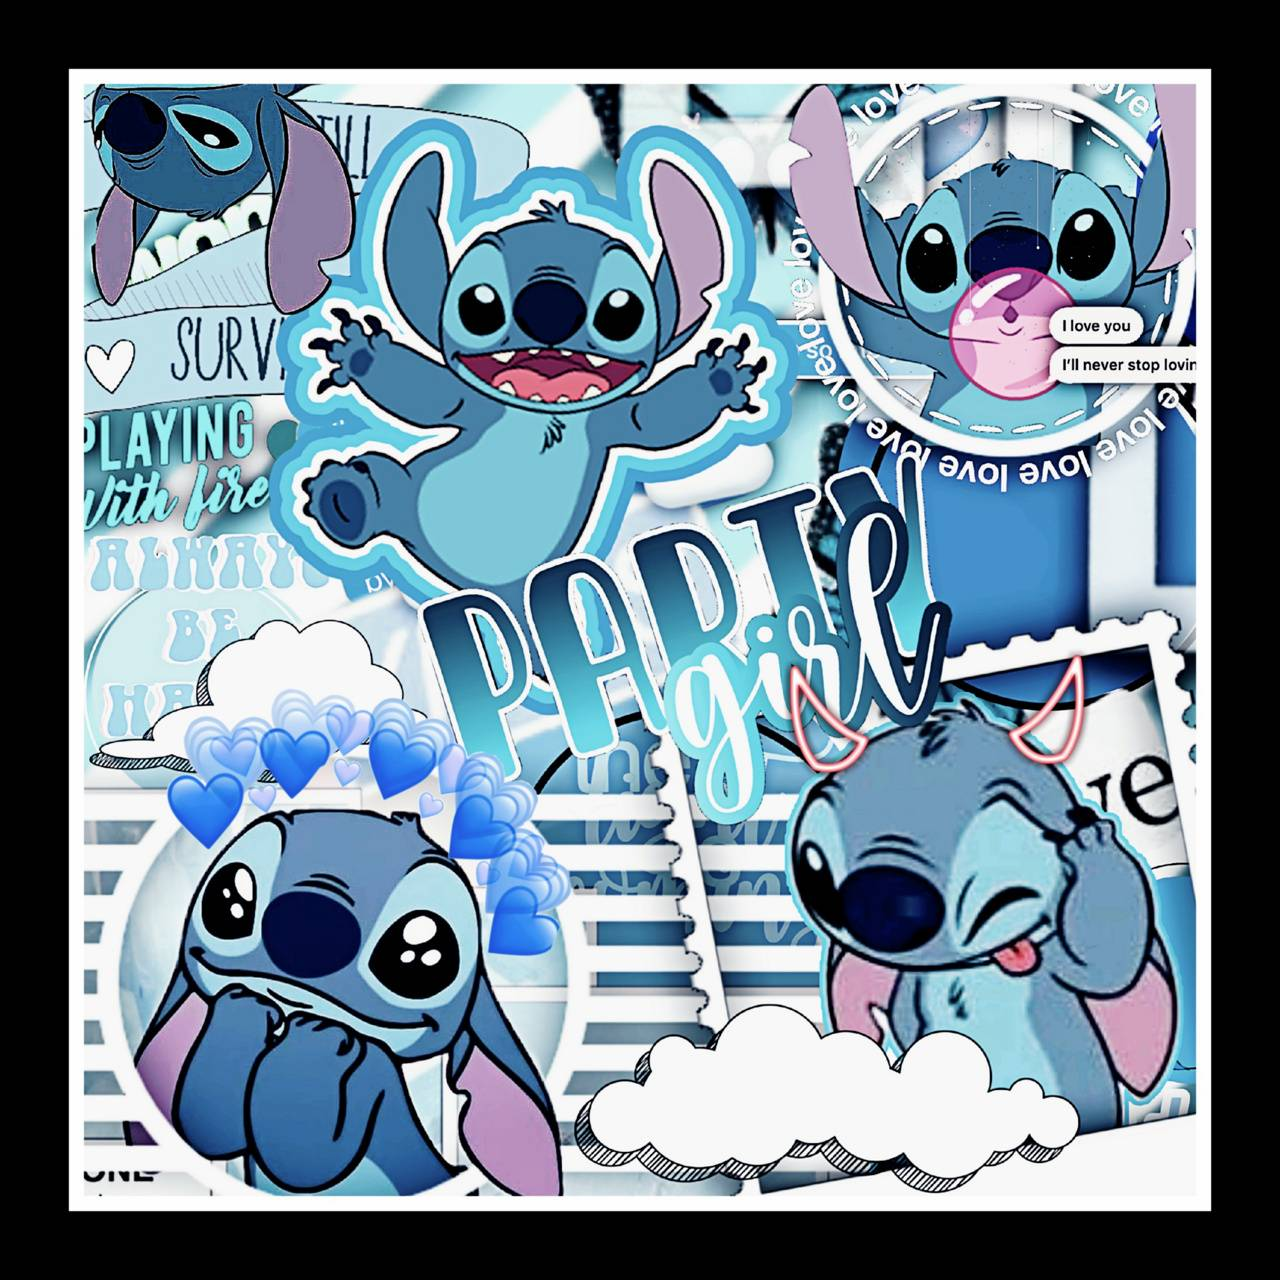 Cute Stitch Wallpaper By Llamadrama2009 92 Free On Zedge Blue aesthetic wallpapers for free download. cute stitch wallpaper by llamadrama2009